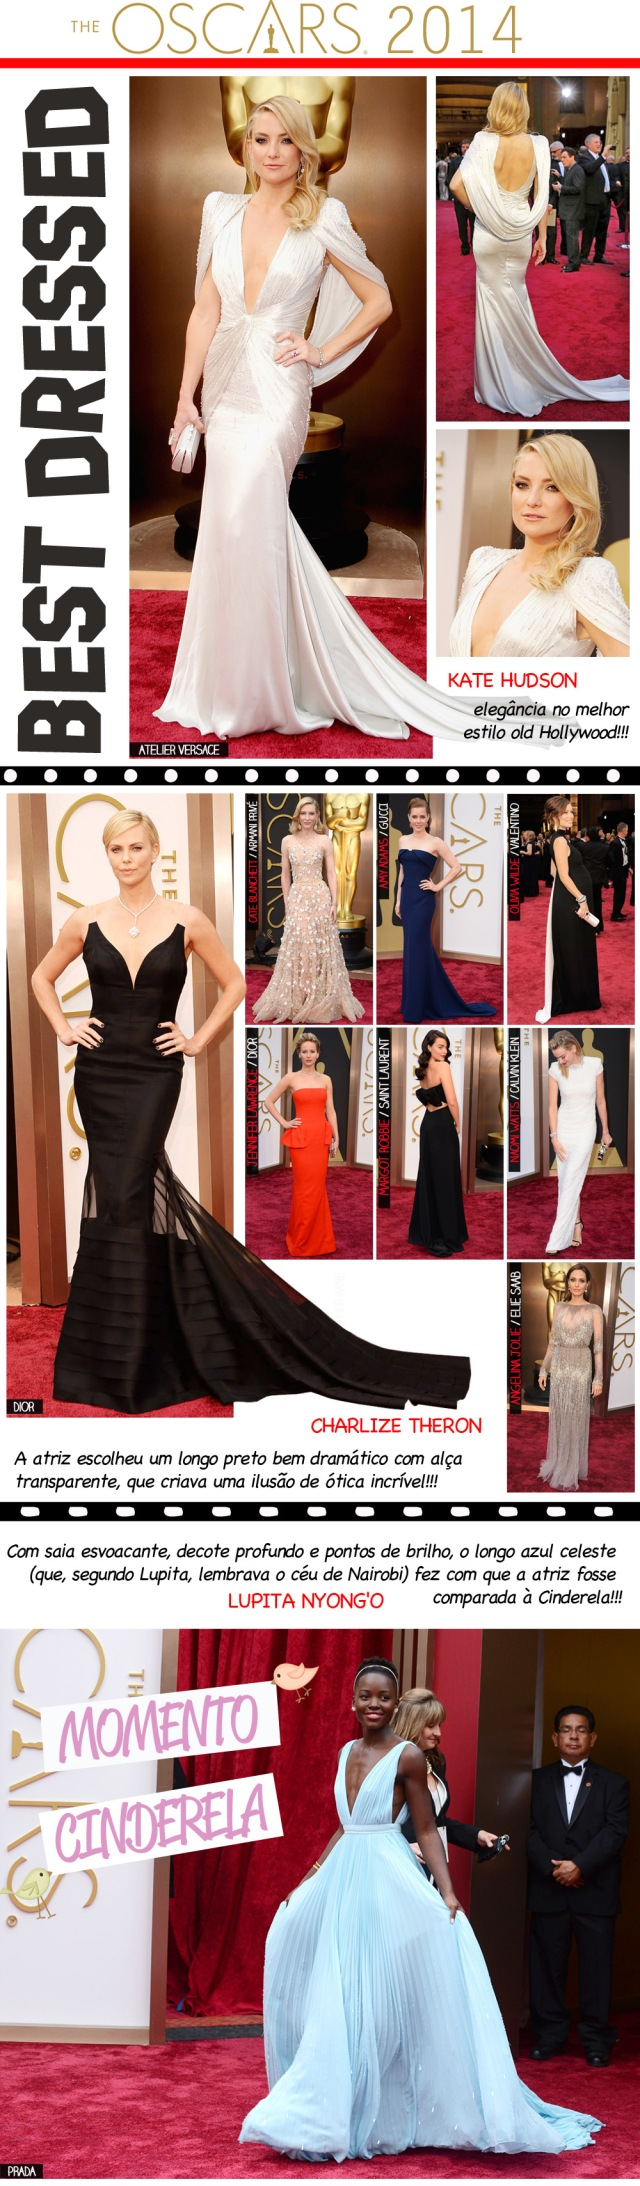 fdn-oscar-2014-red-carpet-best-dressed-kate-hudson-lupita-nyongo-charlize-theron